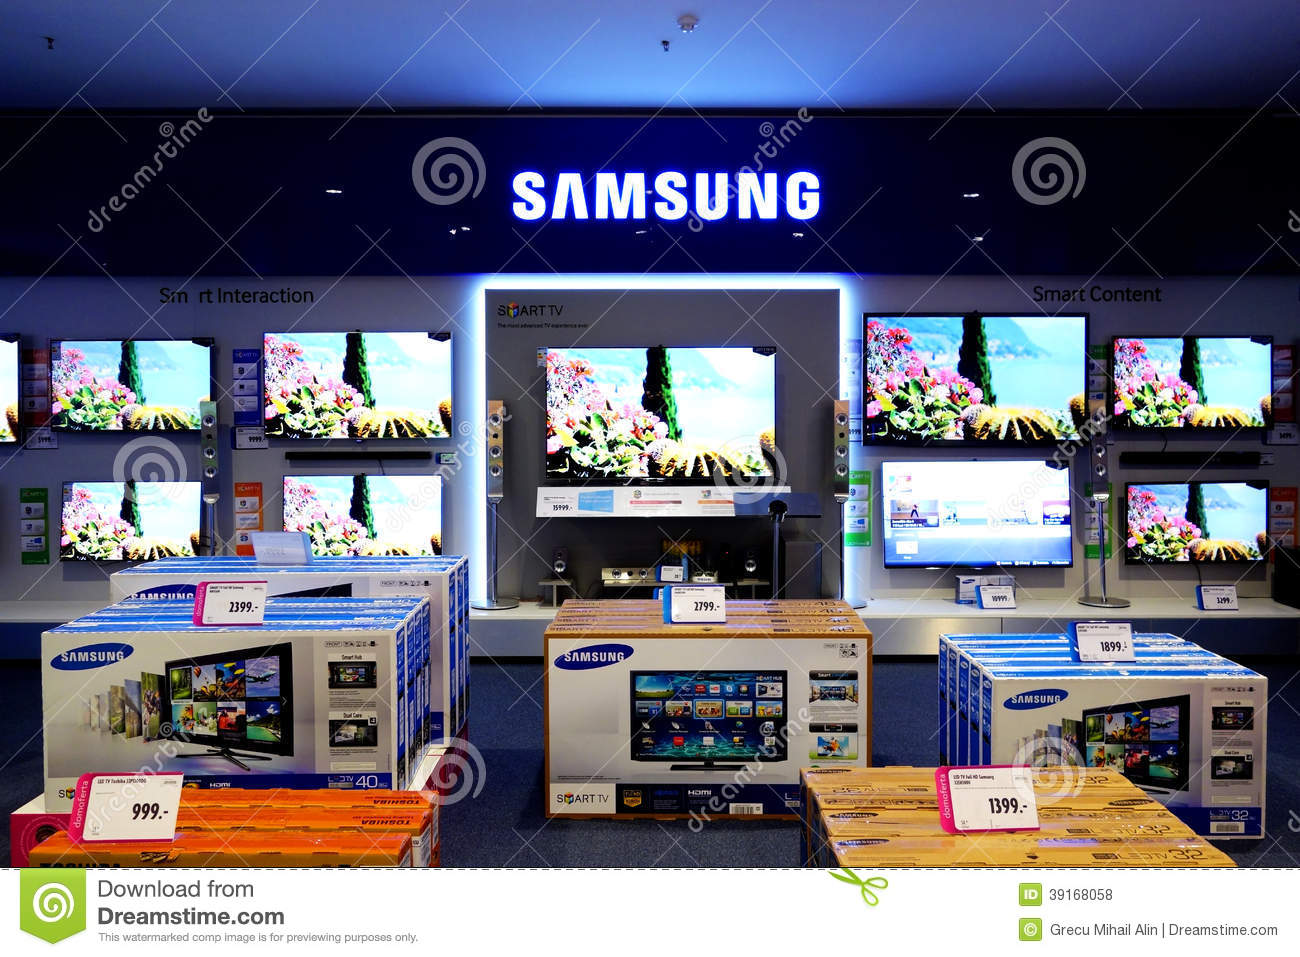 Samsung Television Smart Tv Editorial Stock Photo - Image of